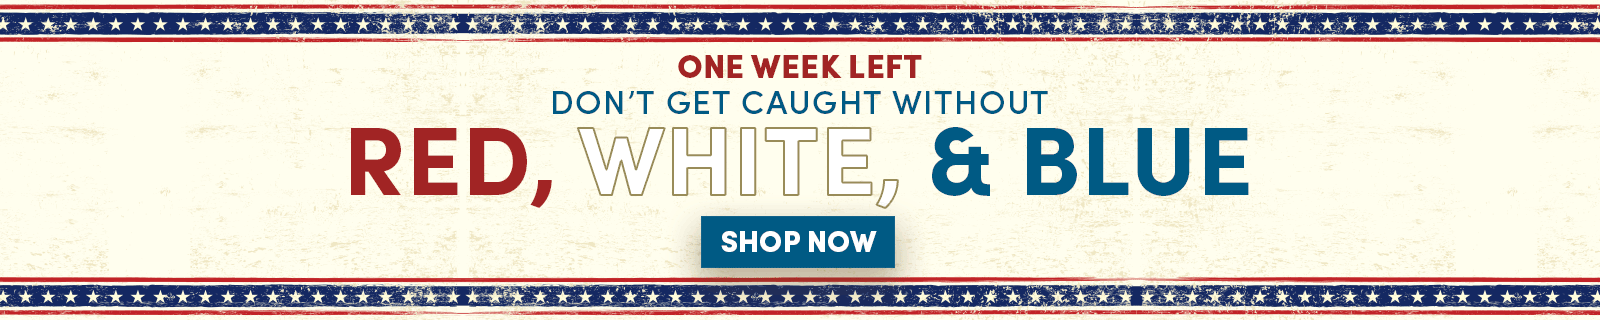 One Week Left. Don't Get Caught Without The Red, White, & Blue! Shop Now